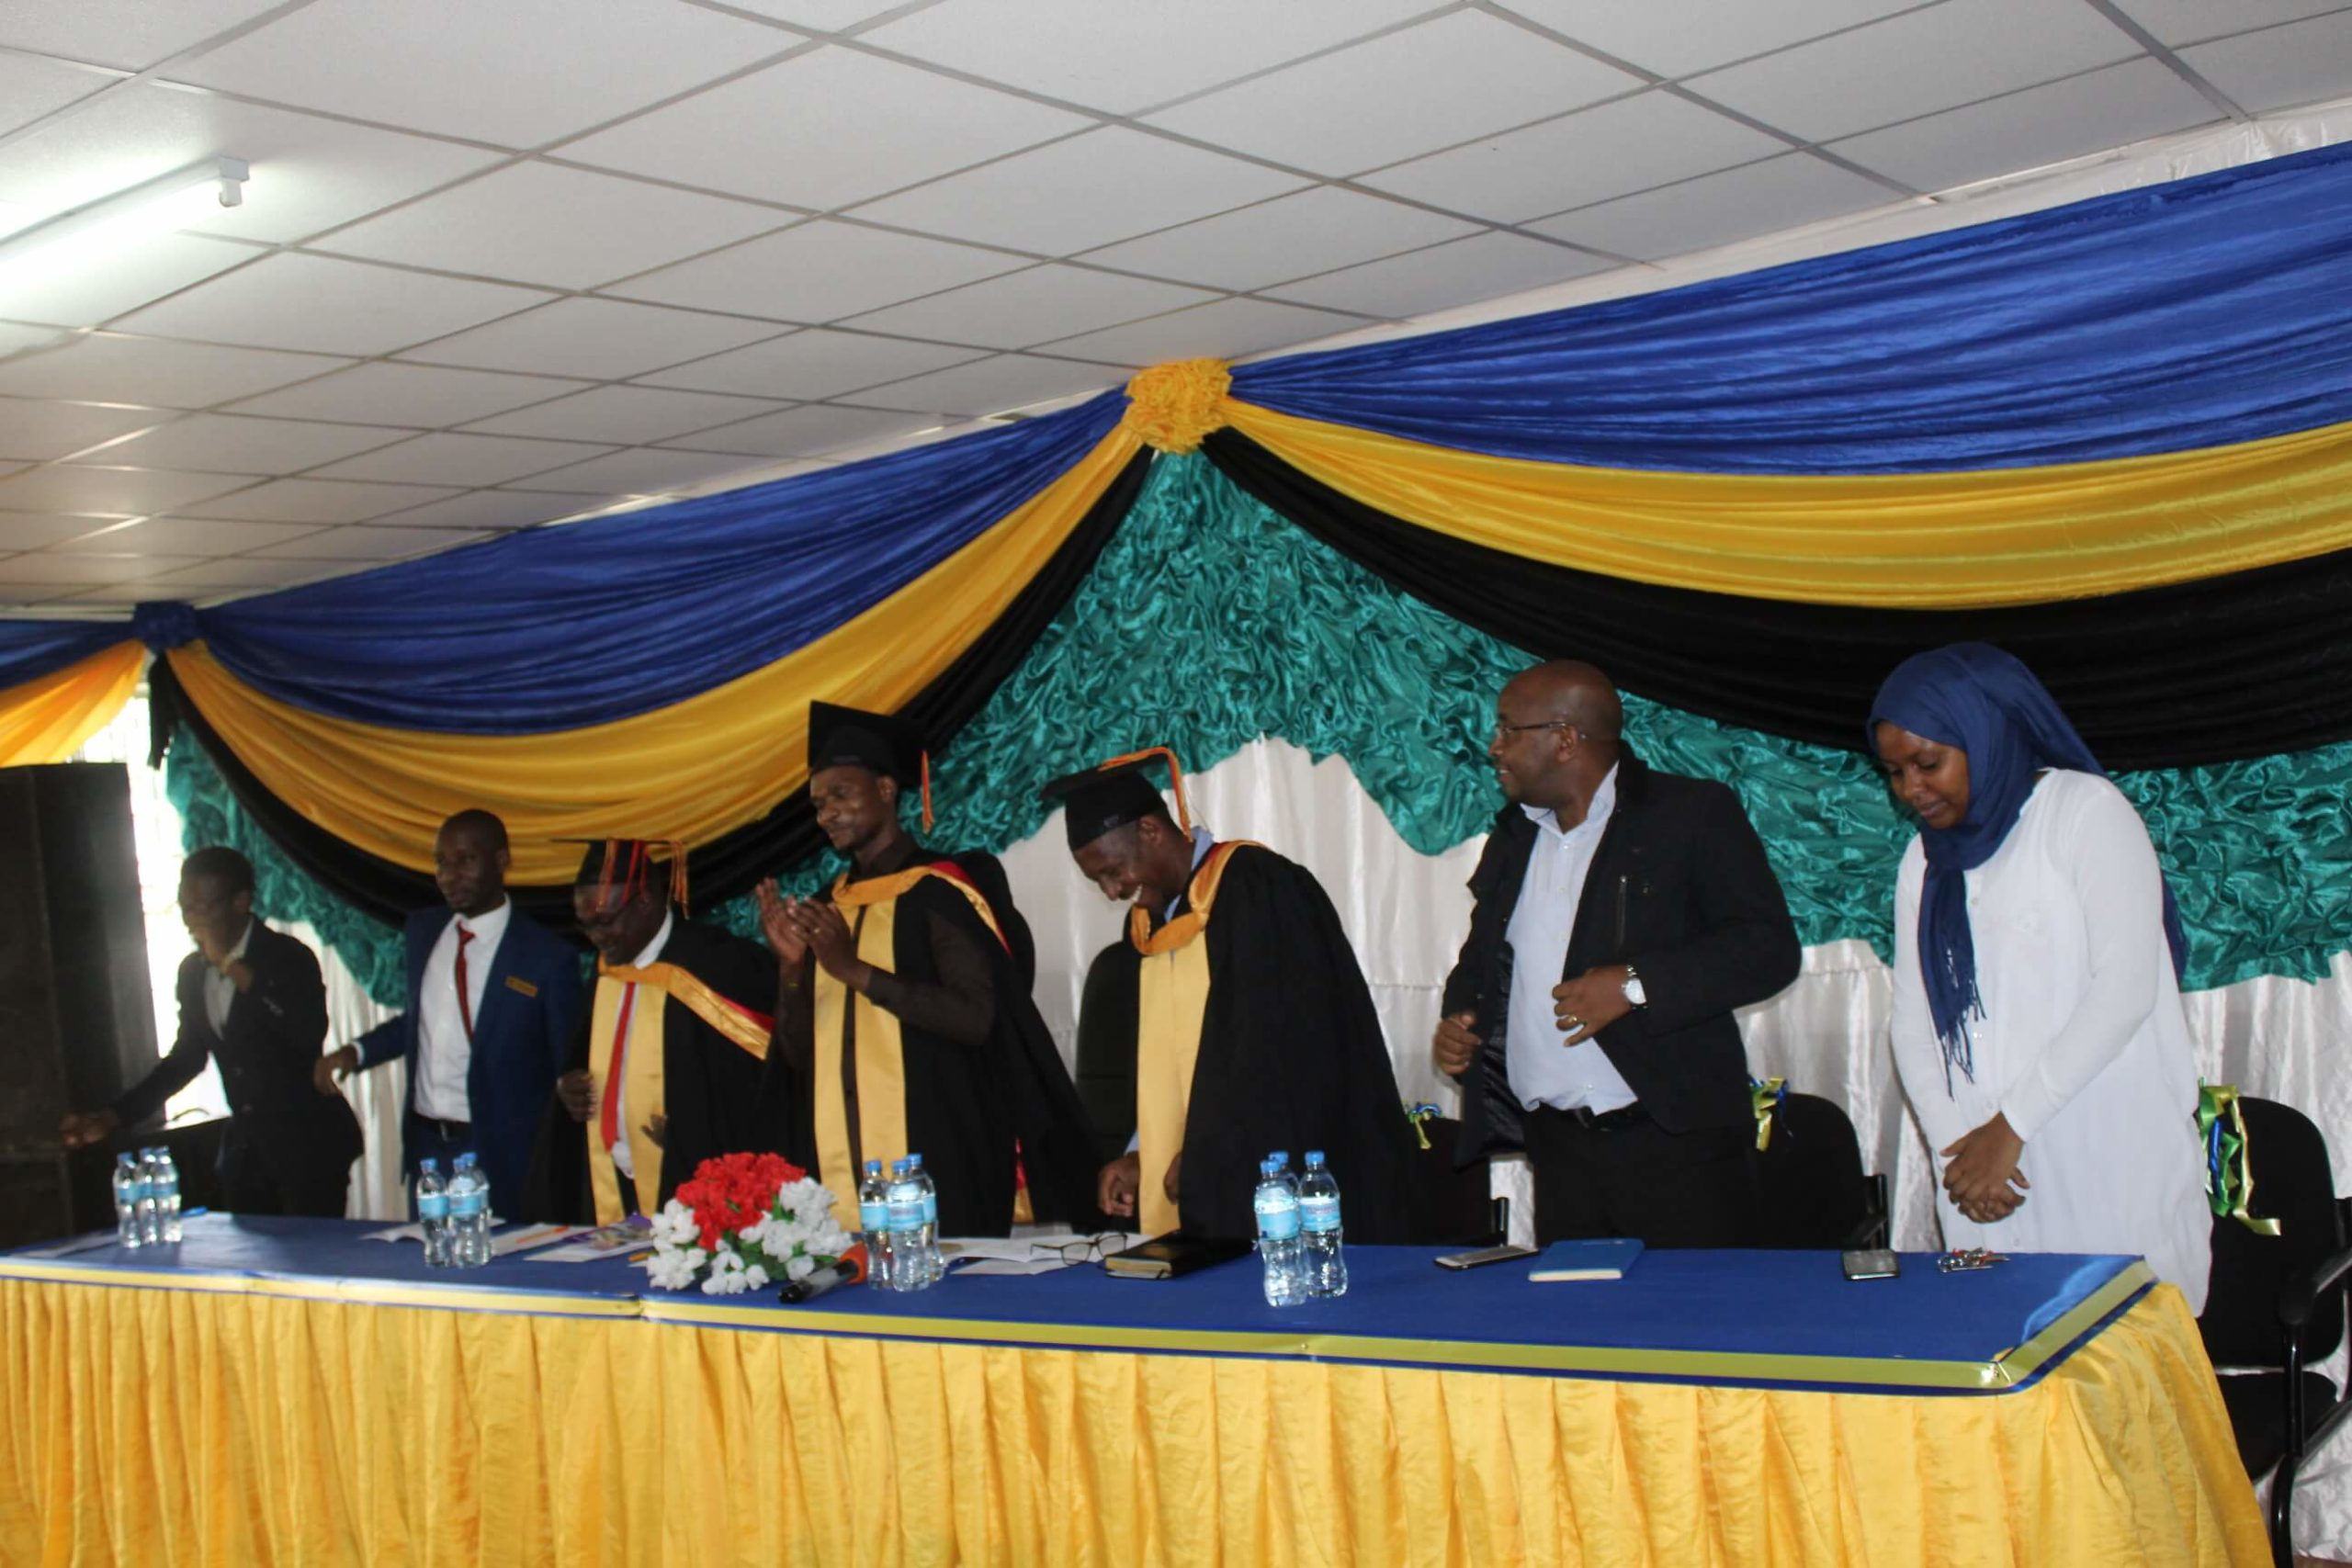 Why not join our partners in celebrating the graduation of our students?